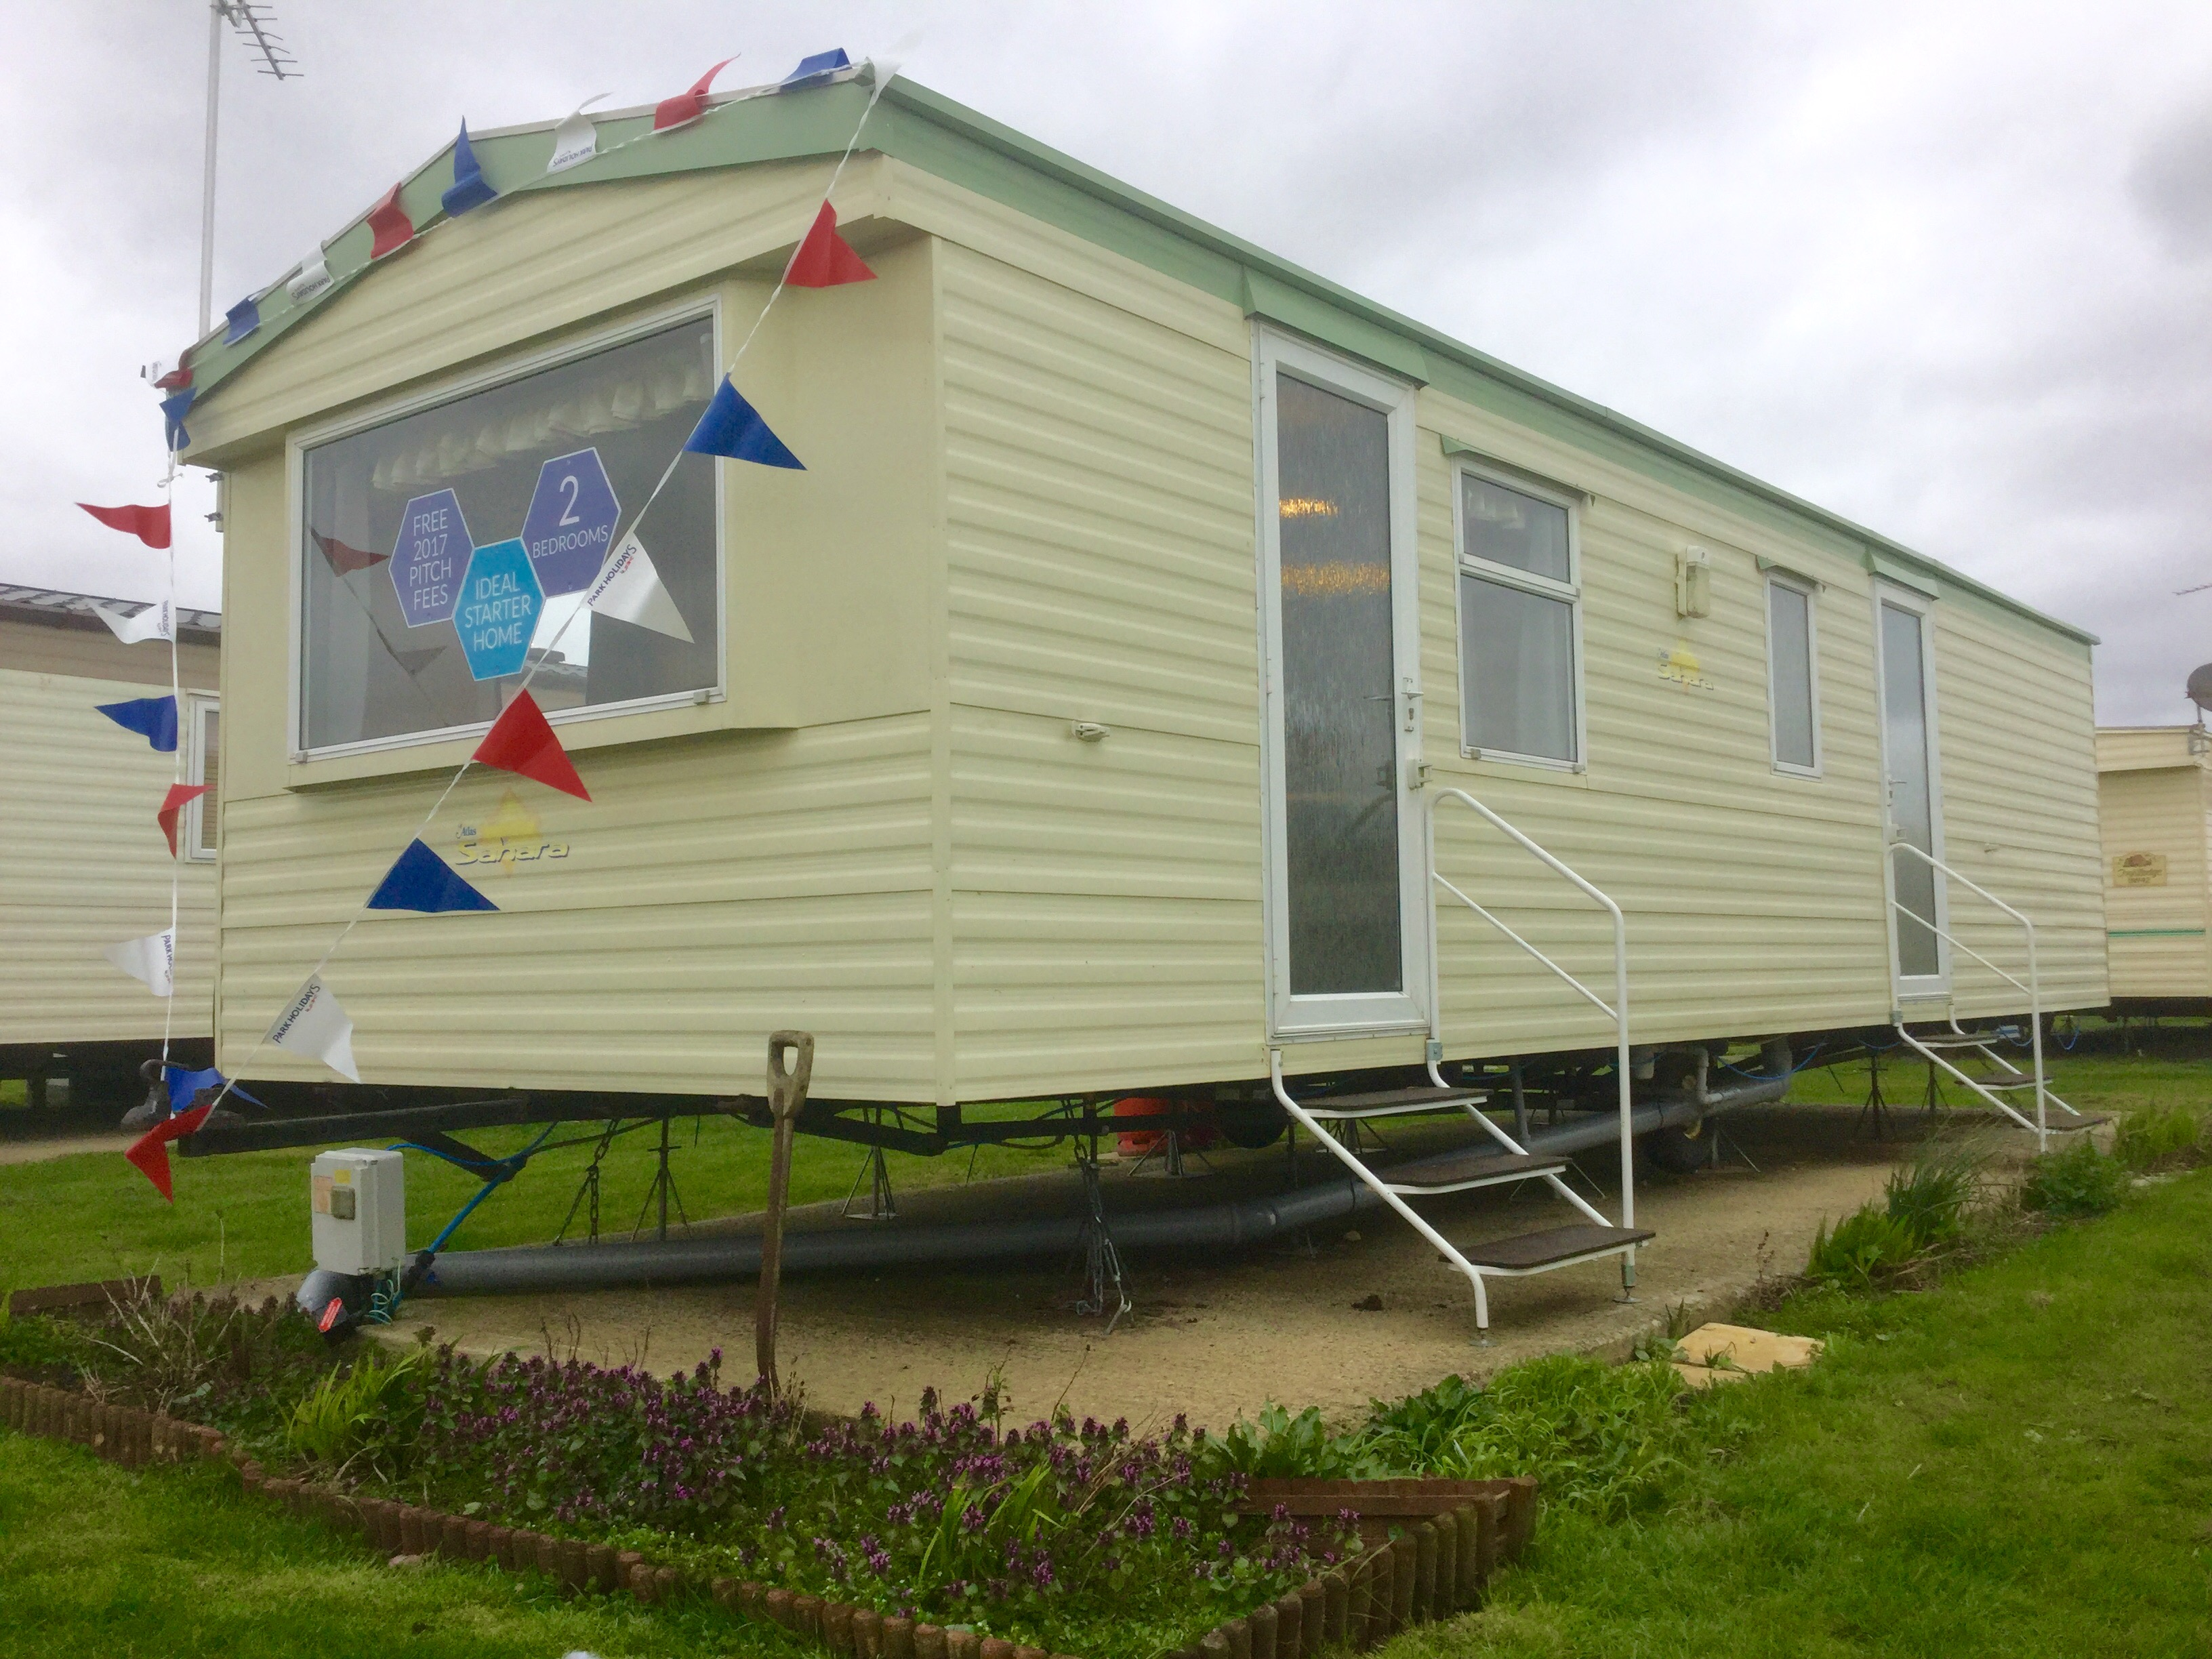 *123* St Osyth Beach Holiday Park, Clacton on Sea, Essex